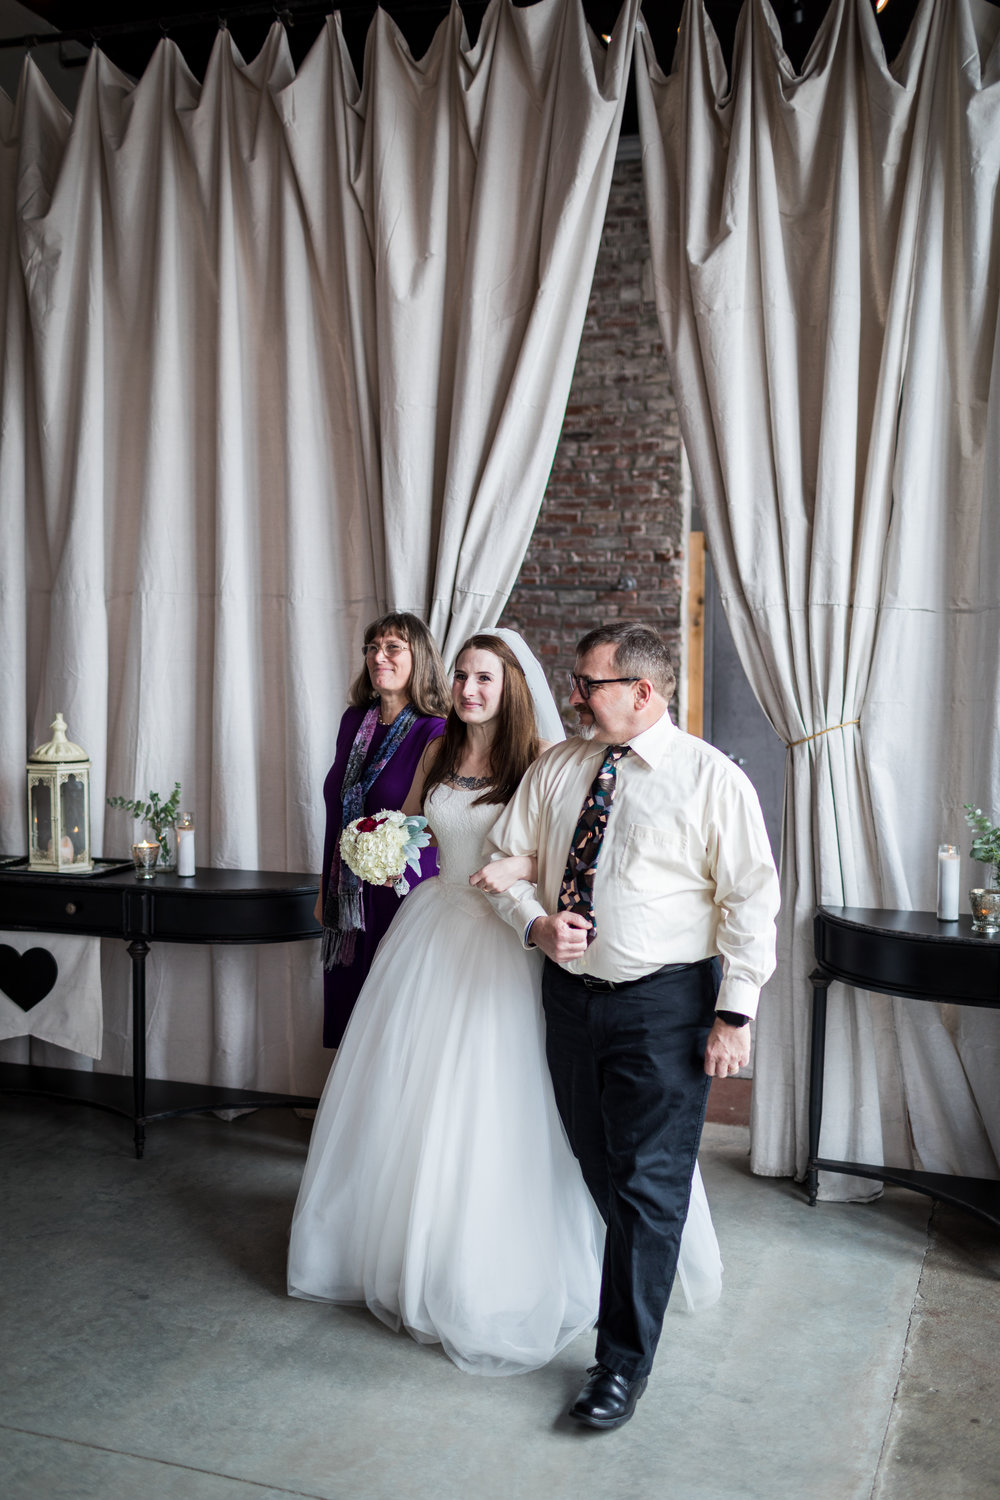 Kansas_City_Small_Wedding_Venue_Elope_Intimate_Ceremony_Budget_Affordable_15MinWedding-065.jpg